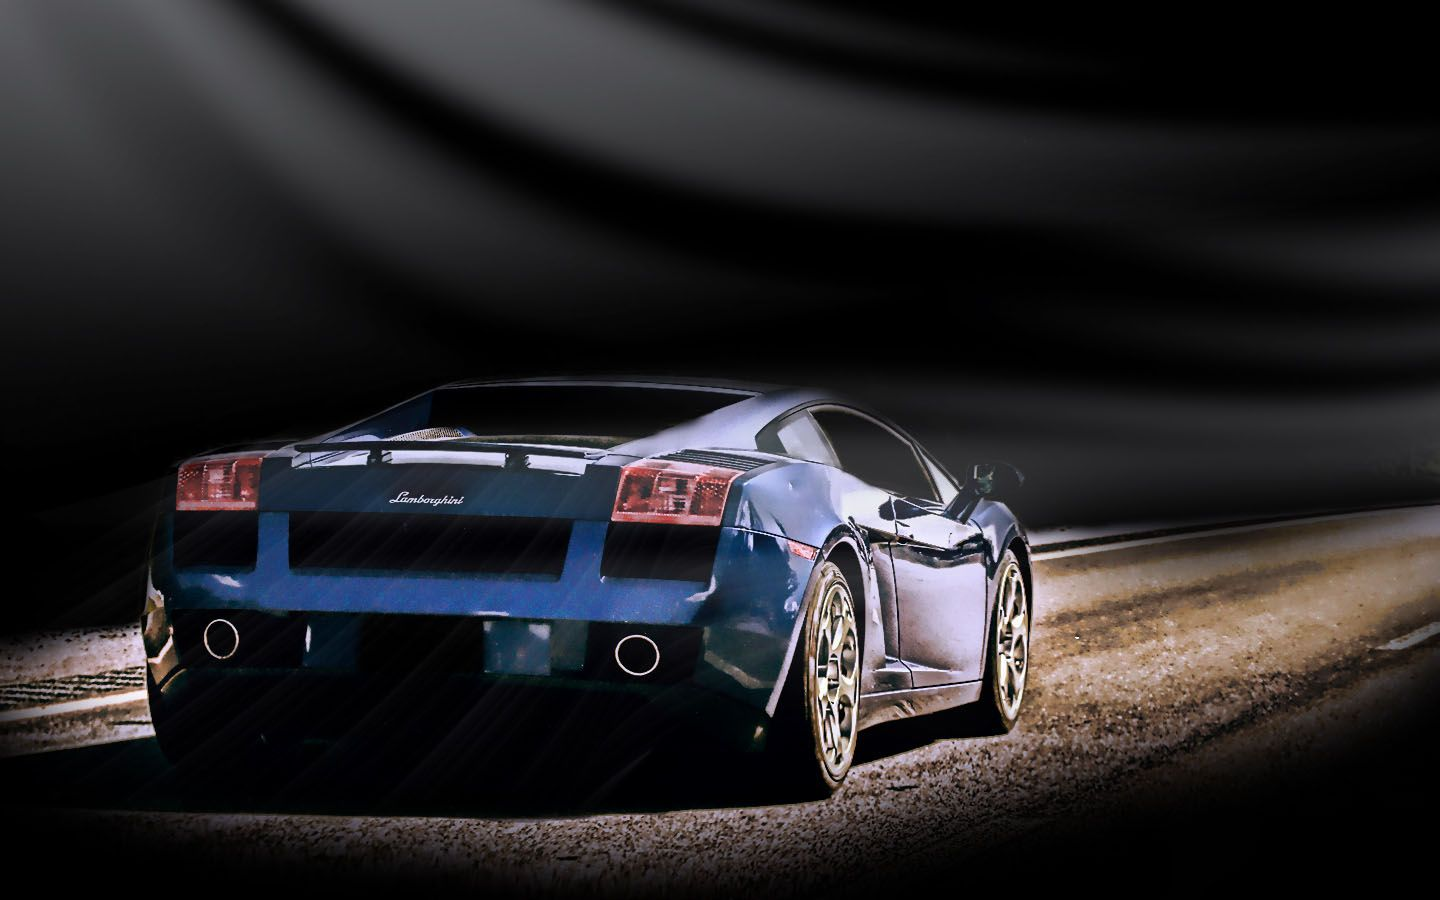 Gallardo Rear View Wallpaper 1440x900